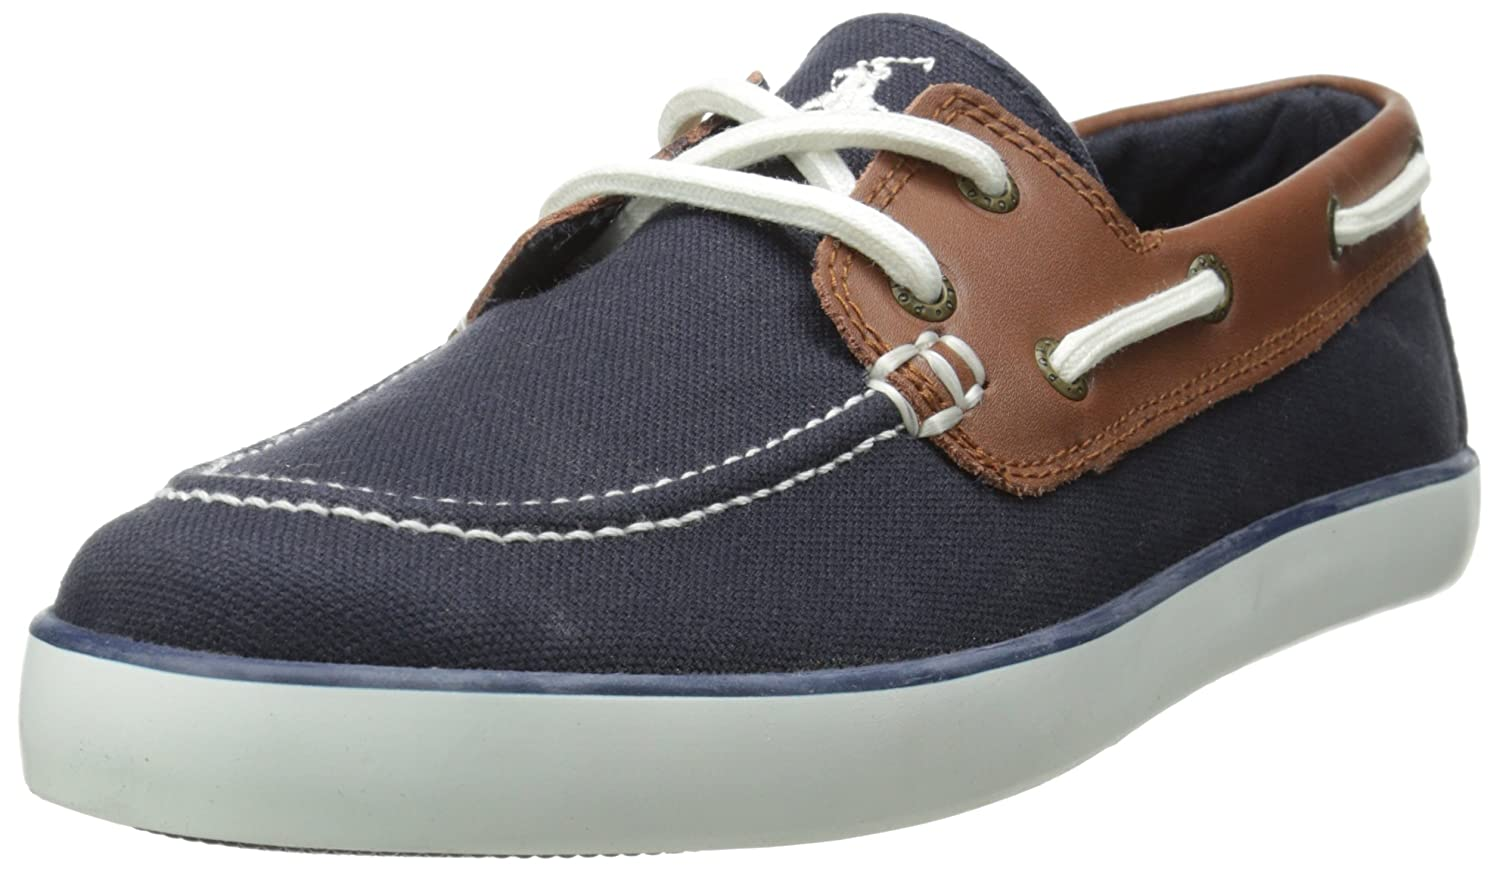 Polo Ralph Lauren Kids' Sander-CL Boat Shoe (Toddler/Little Kid/Big Kid) SANDER-CL - K